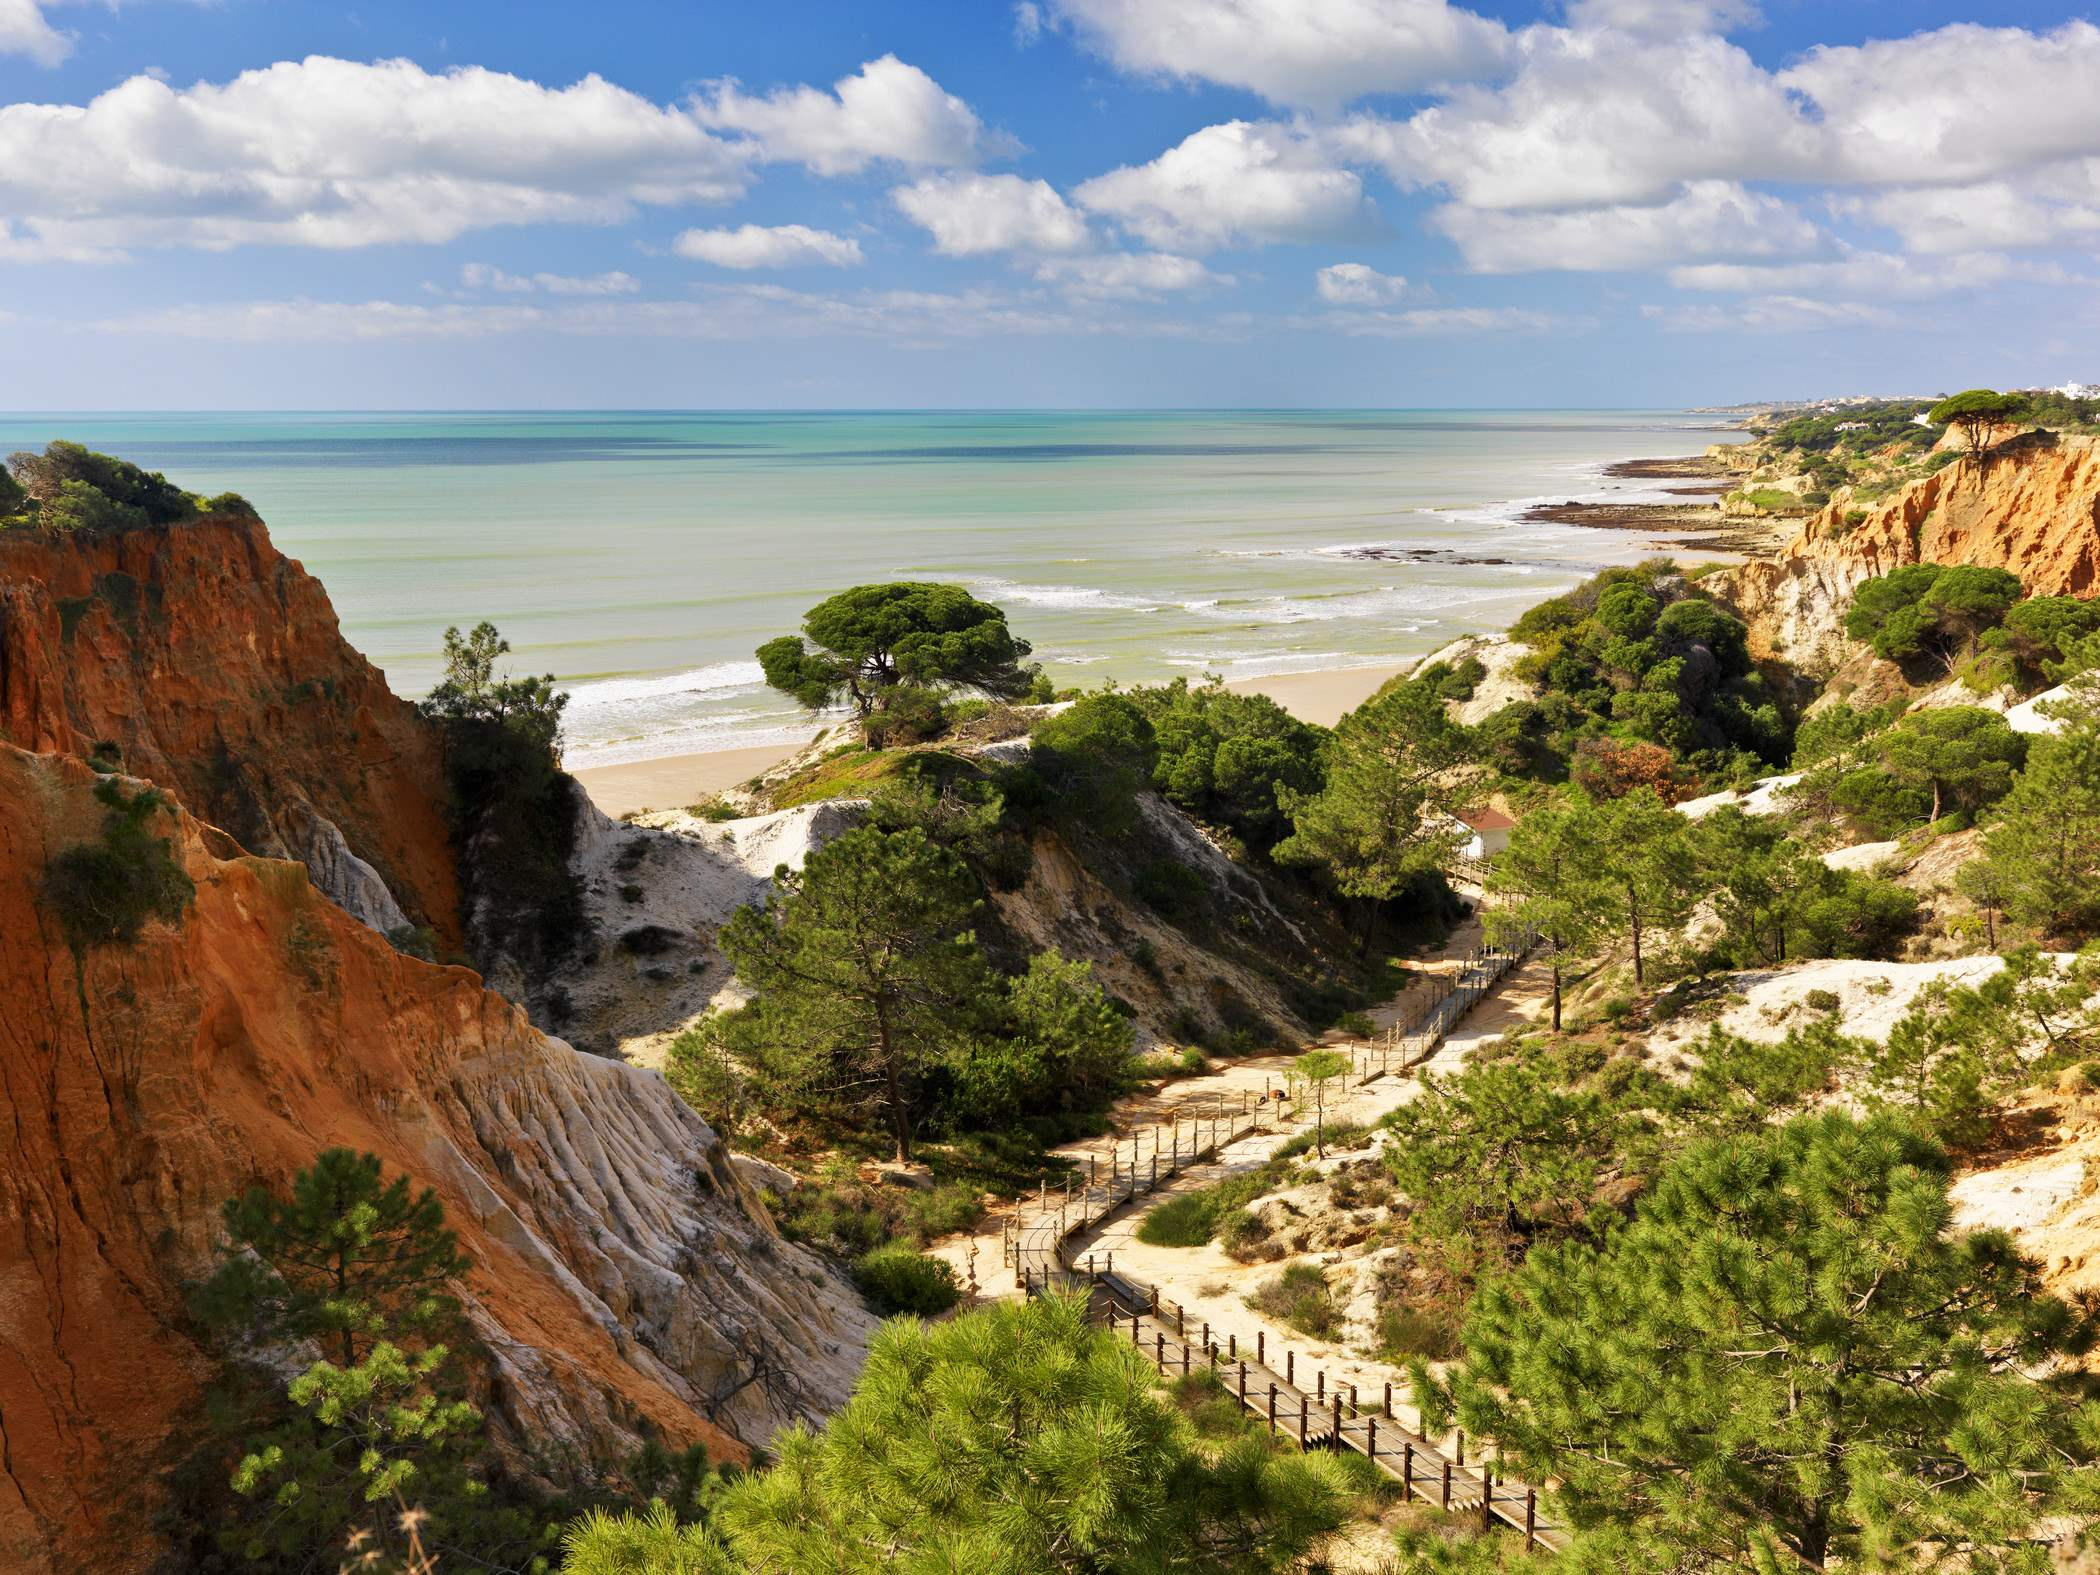 Pine Cliffs Gardens, Two Bedroom Suite, S/C Basis, 2 bedroom apartment in Pine Cliffs Resort, Algarve Photo #57